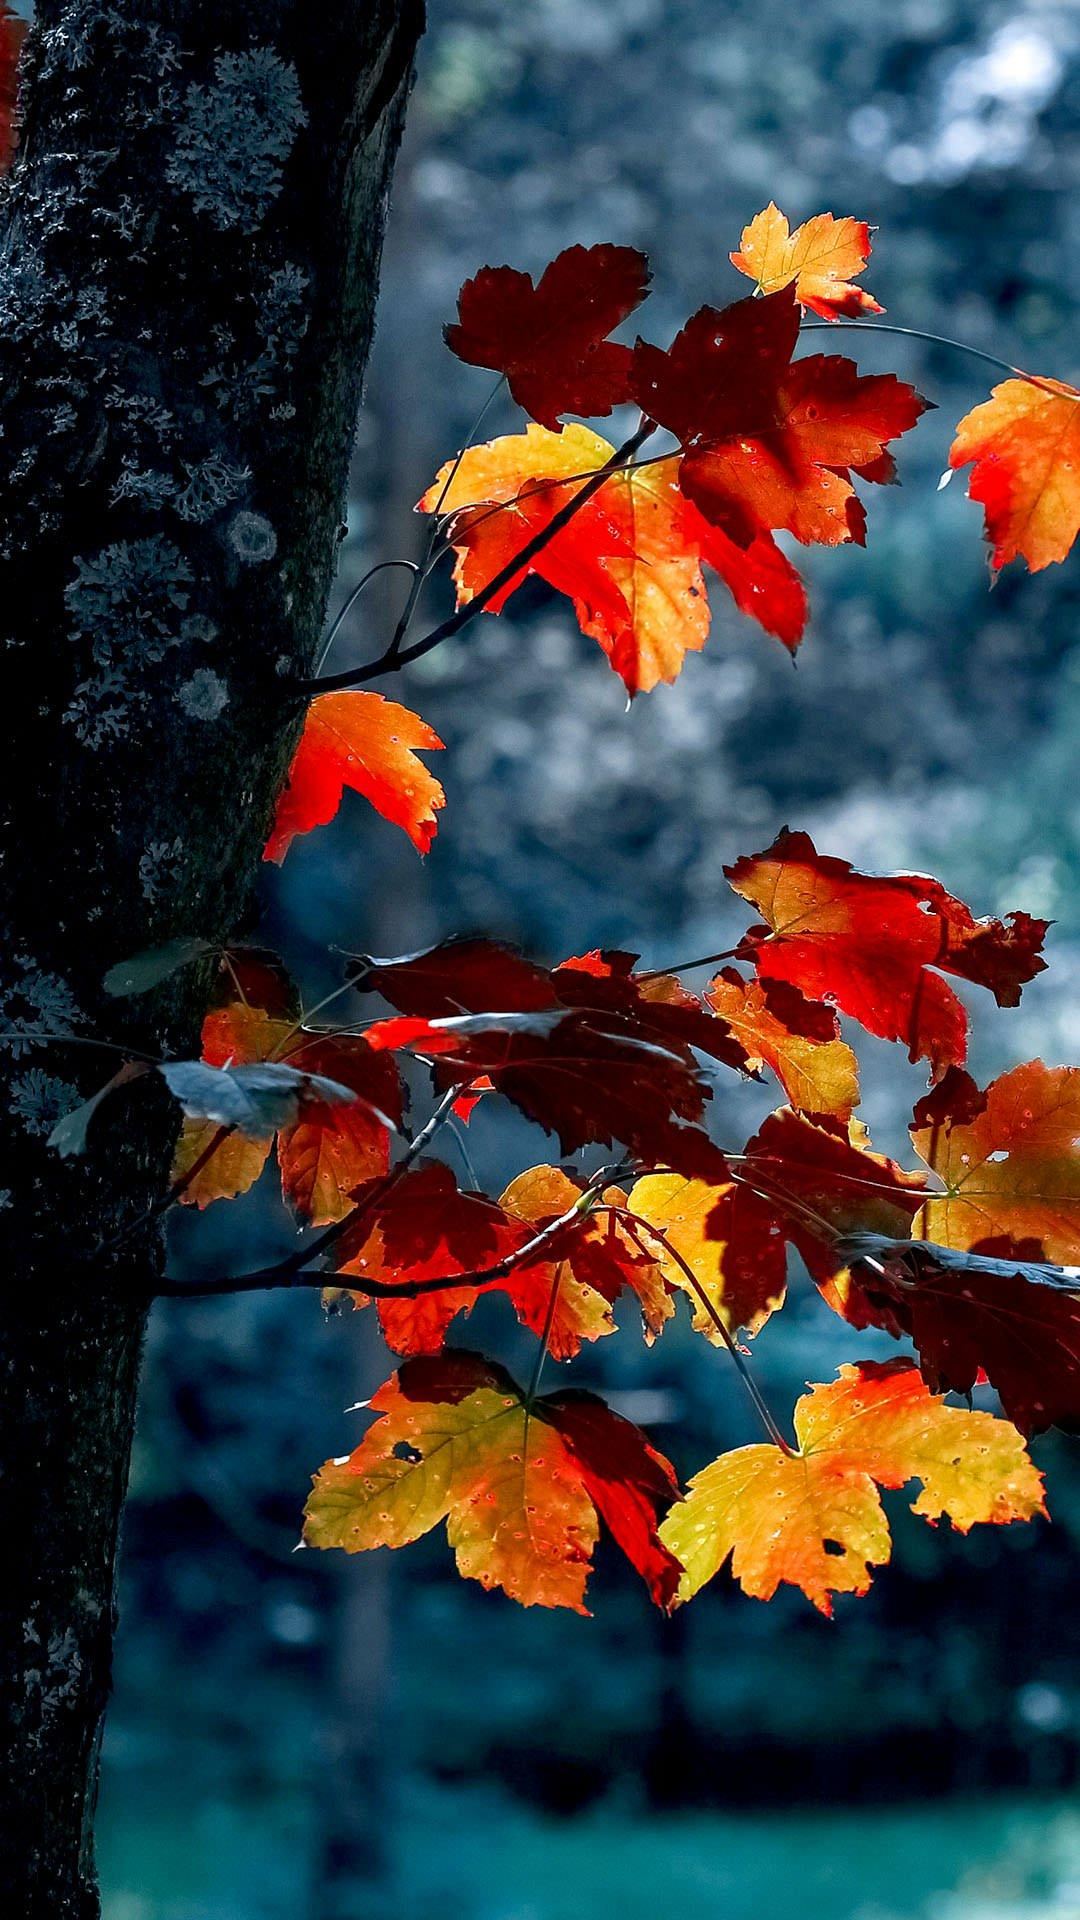 Autumn Aesthetic Wallpapers - Wallpaper Cave